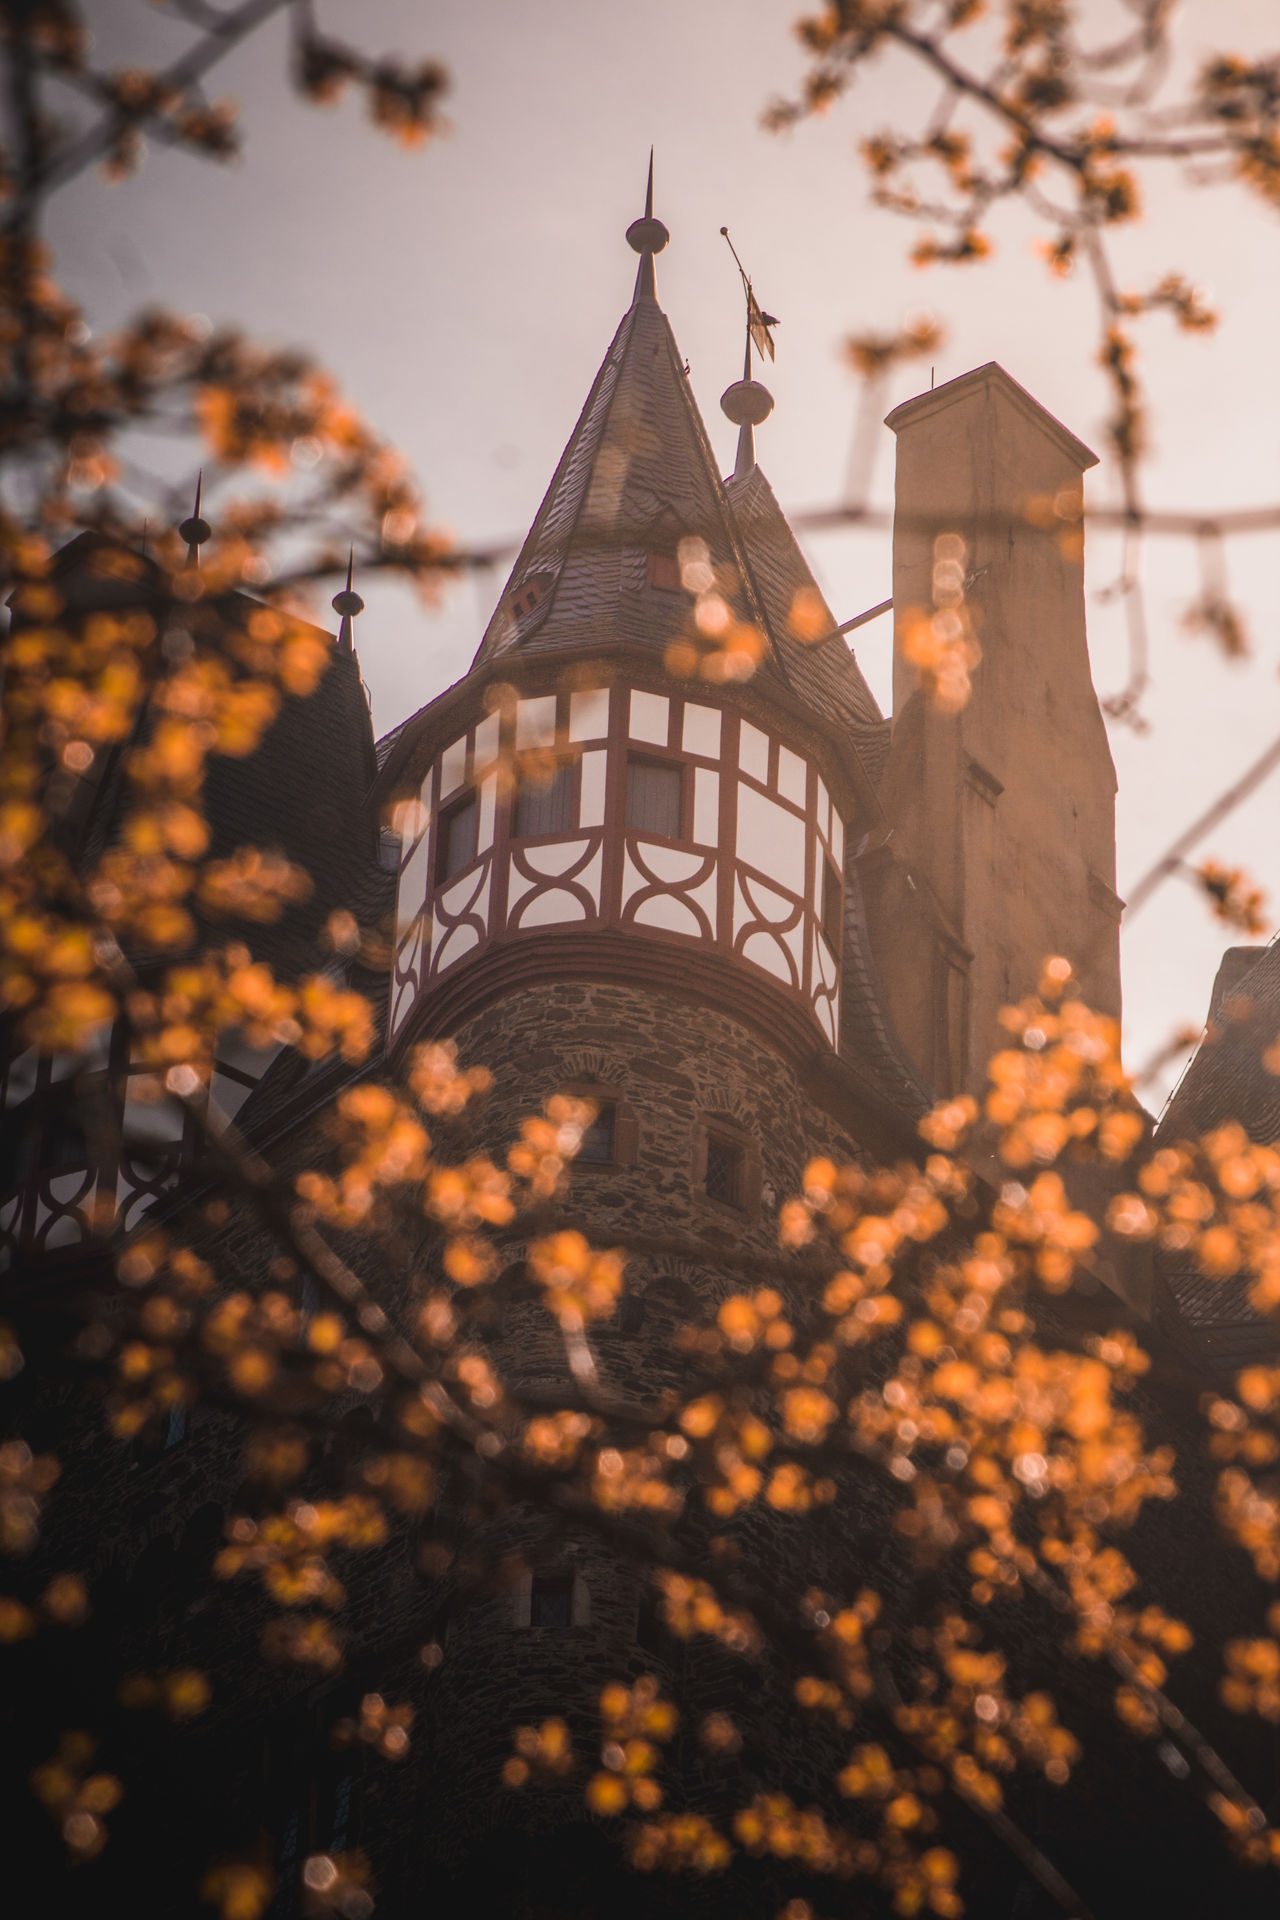 Architecture Building Exterior Sunset Built Structure History Tree Sky Outdoors No People Clock Tower Day Travel Destinations EyeEm Gallery Castle Bokeh Medieval Sunlight Low Angle View EyeEm Best Edits Eye4photography Colors EyeEm Best Shots EyeEm Countryside Close-up